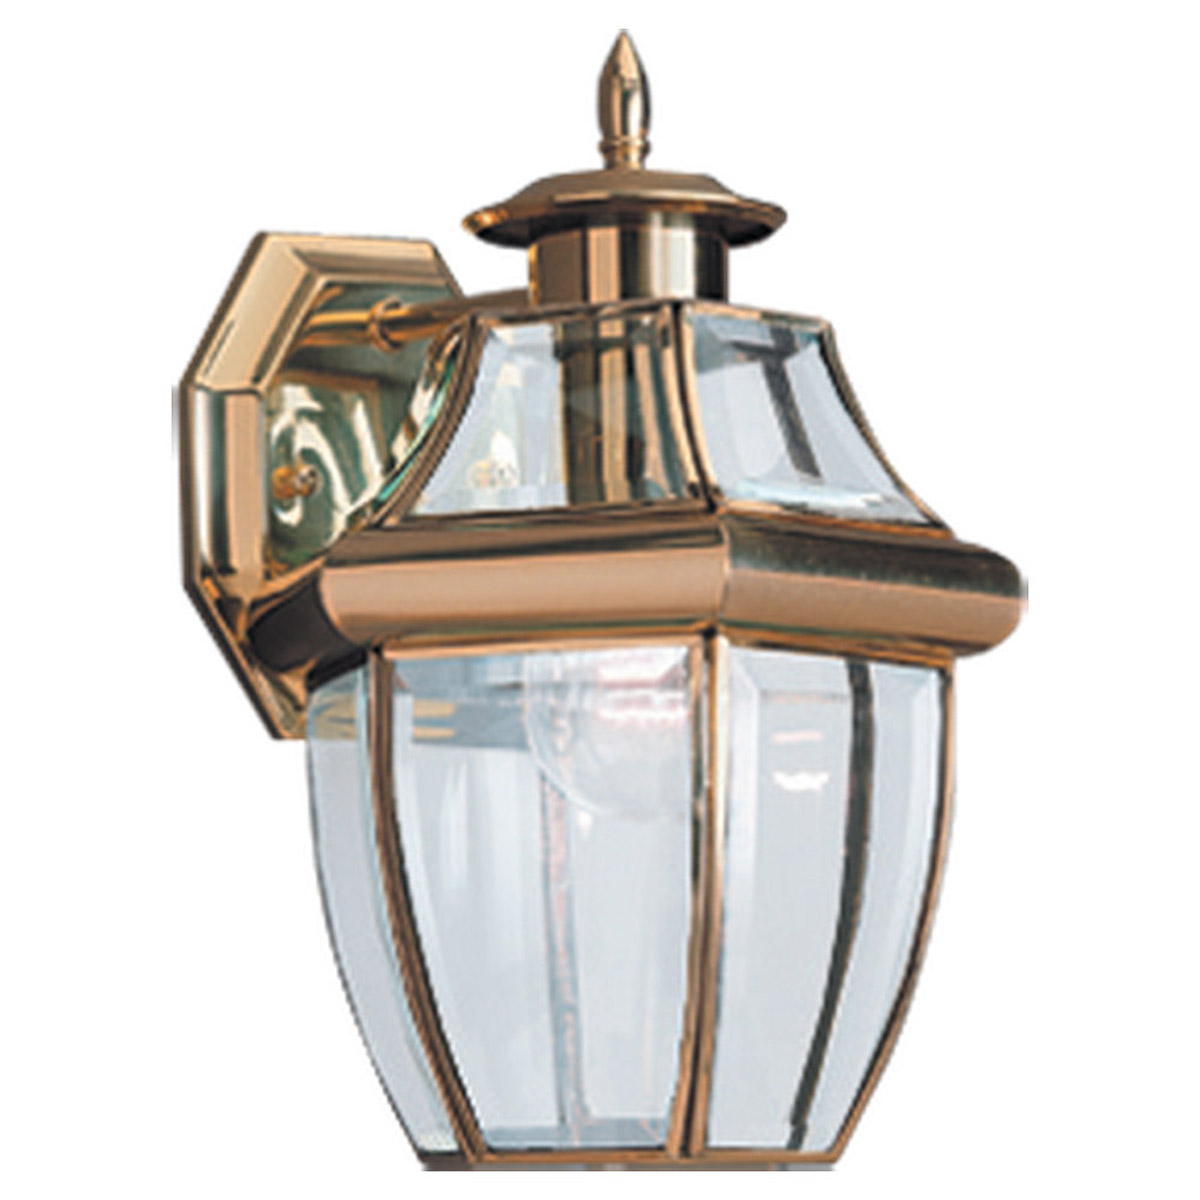 Sea Gull Lighting Lancaster 1 Light Outdoor Wall Lantern in Polished Brass 8038-02